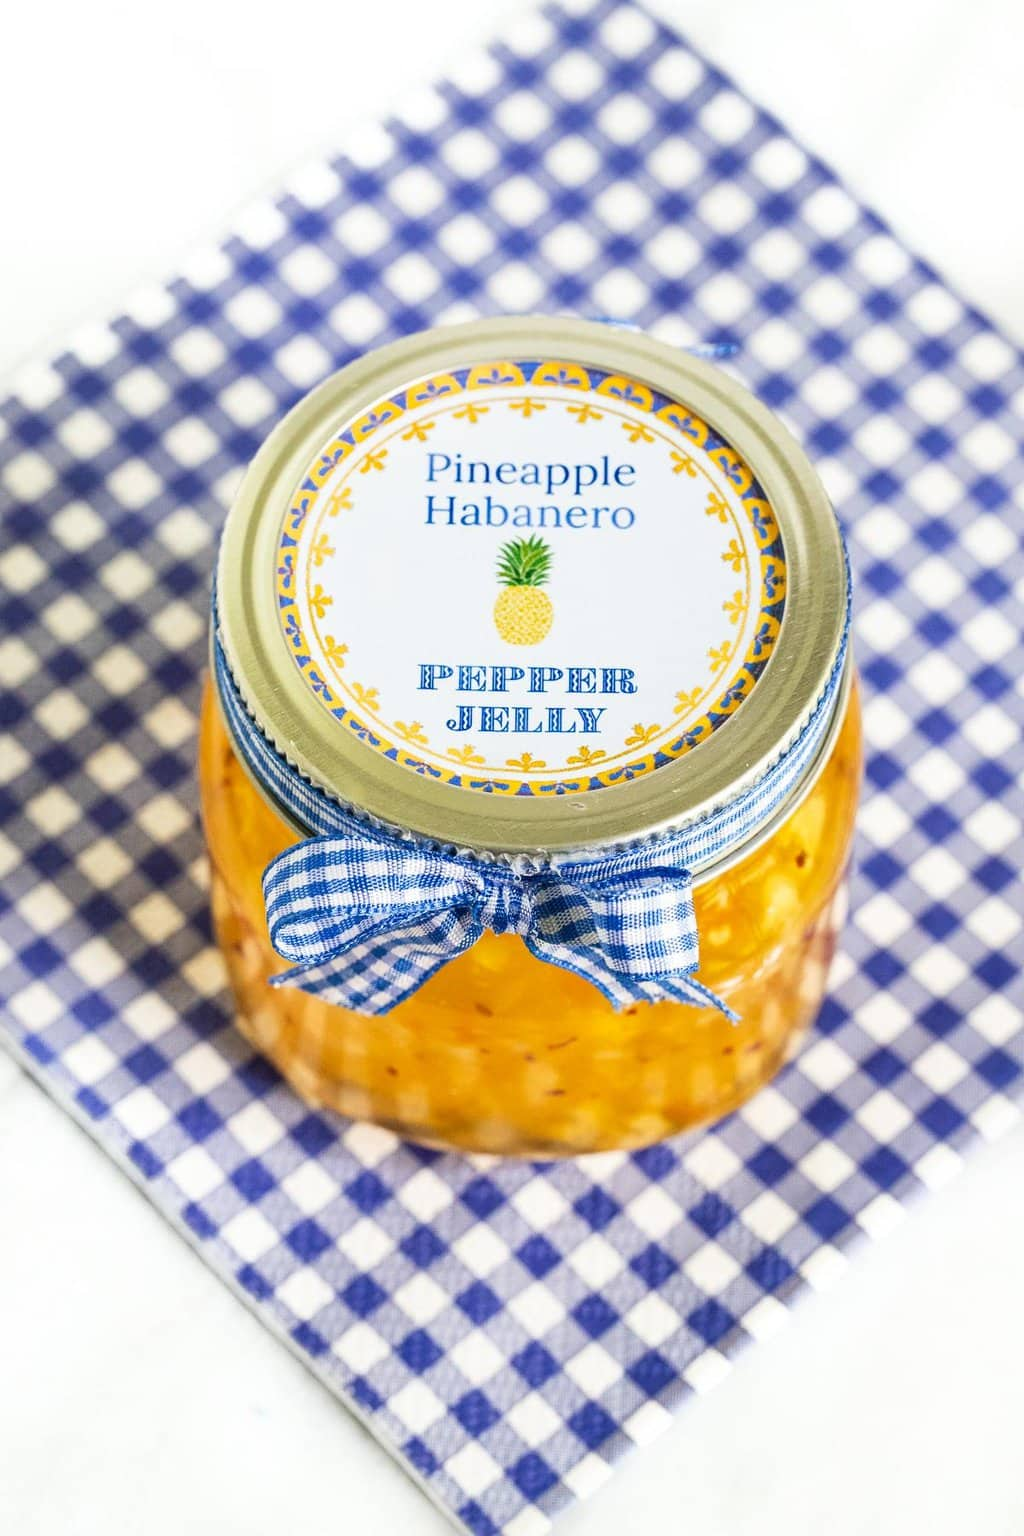 Vertical closeup photo of a jar of Pineapple Habanero Pepper Jelly decorated with a custom label on the lid and a blue and white checkered ribbon bow.